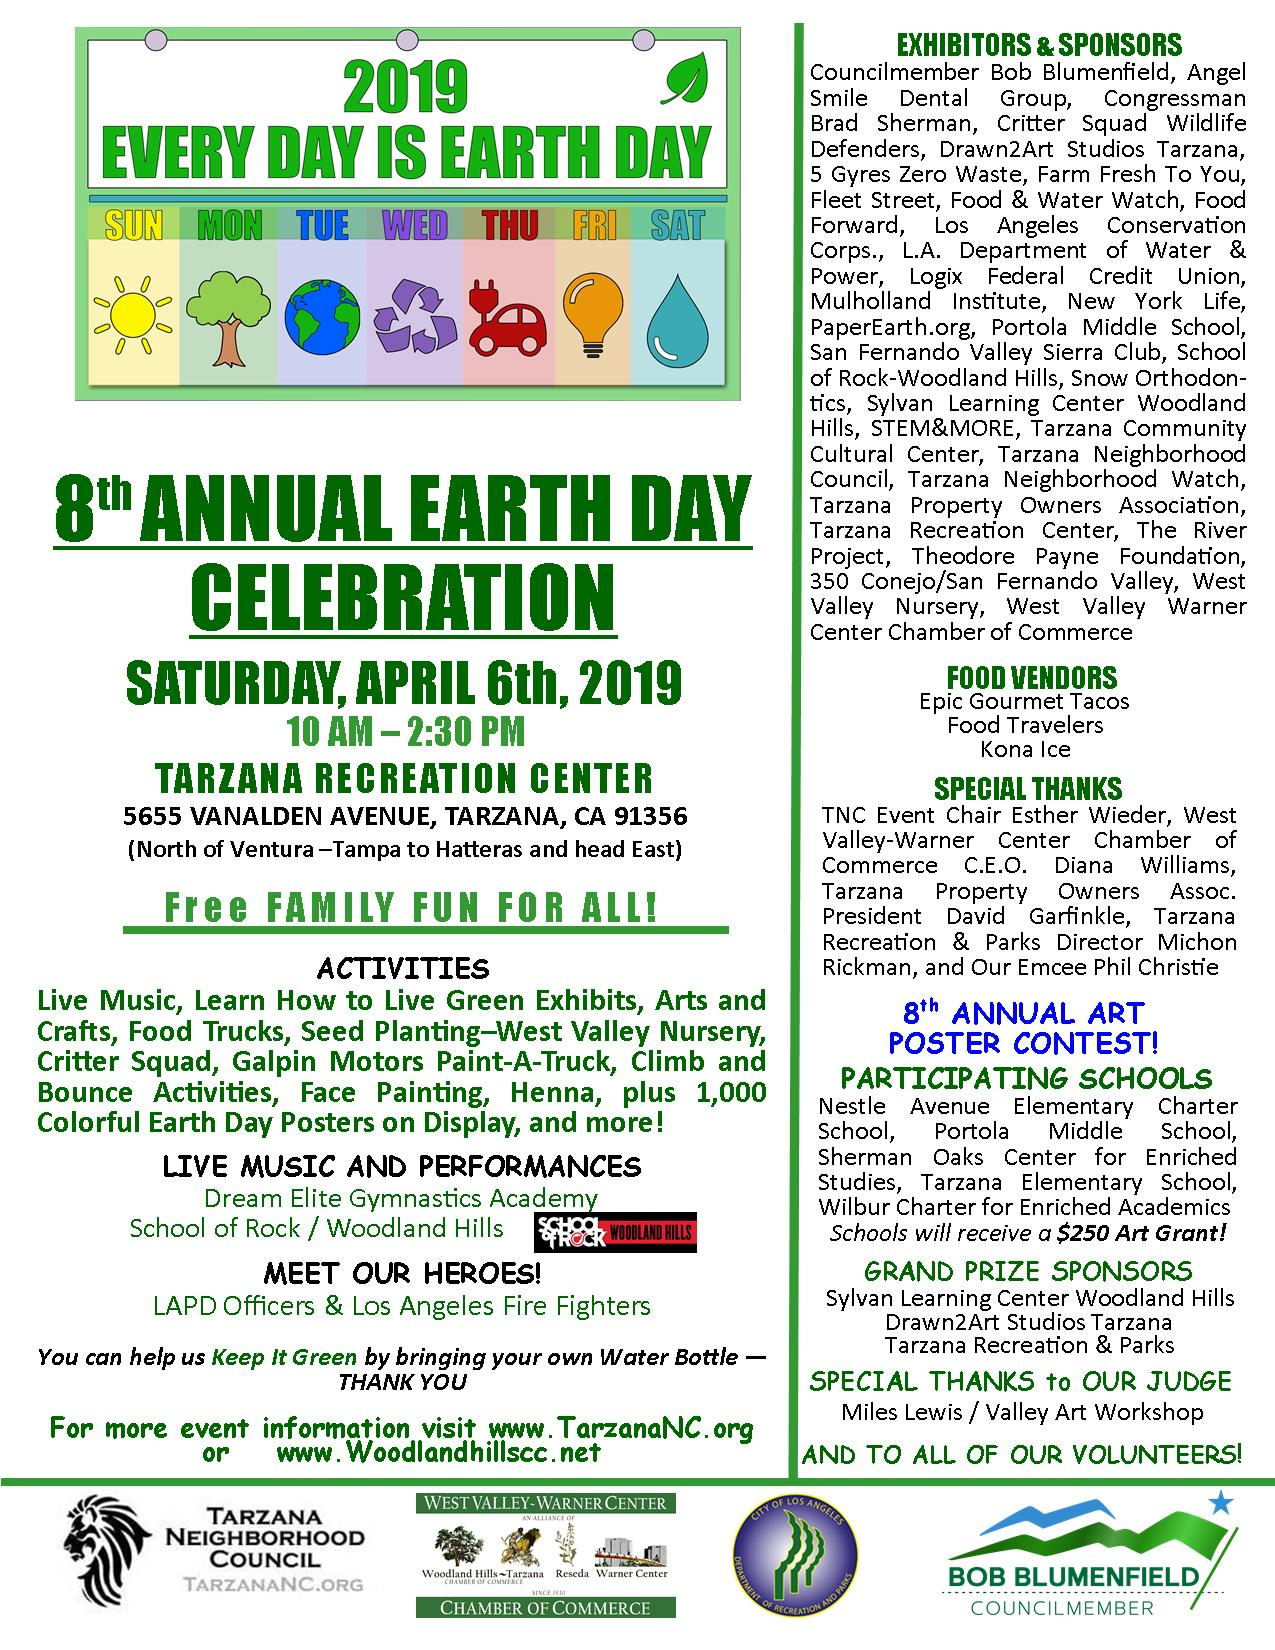 2019_Earth_Day_Flyer_-_schools_03-11-2019_Final.jpg